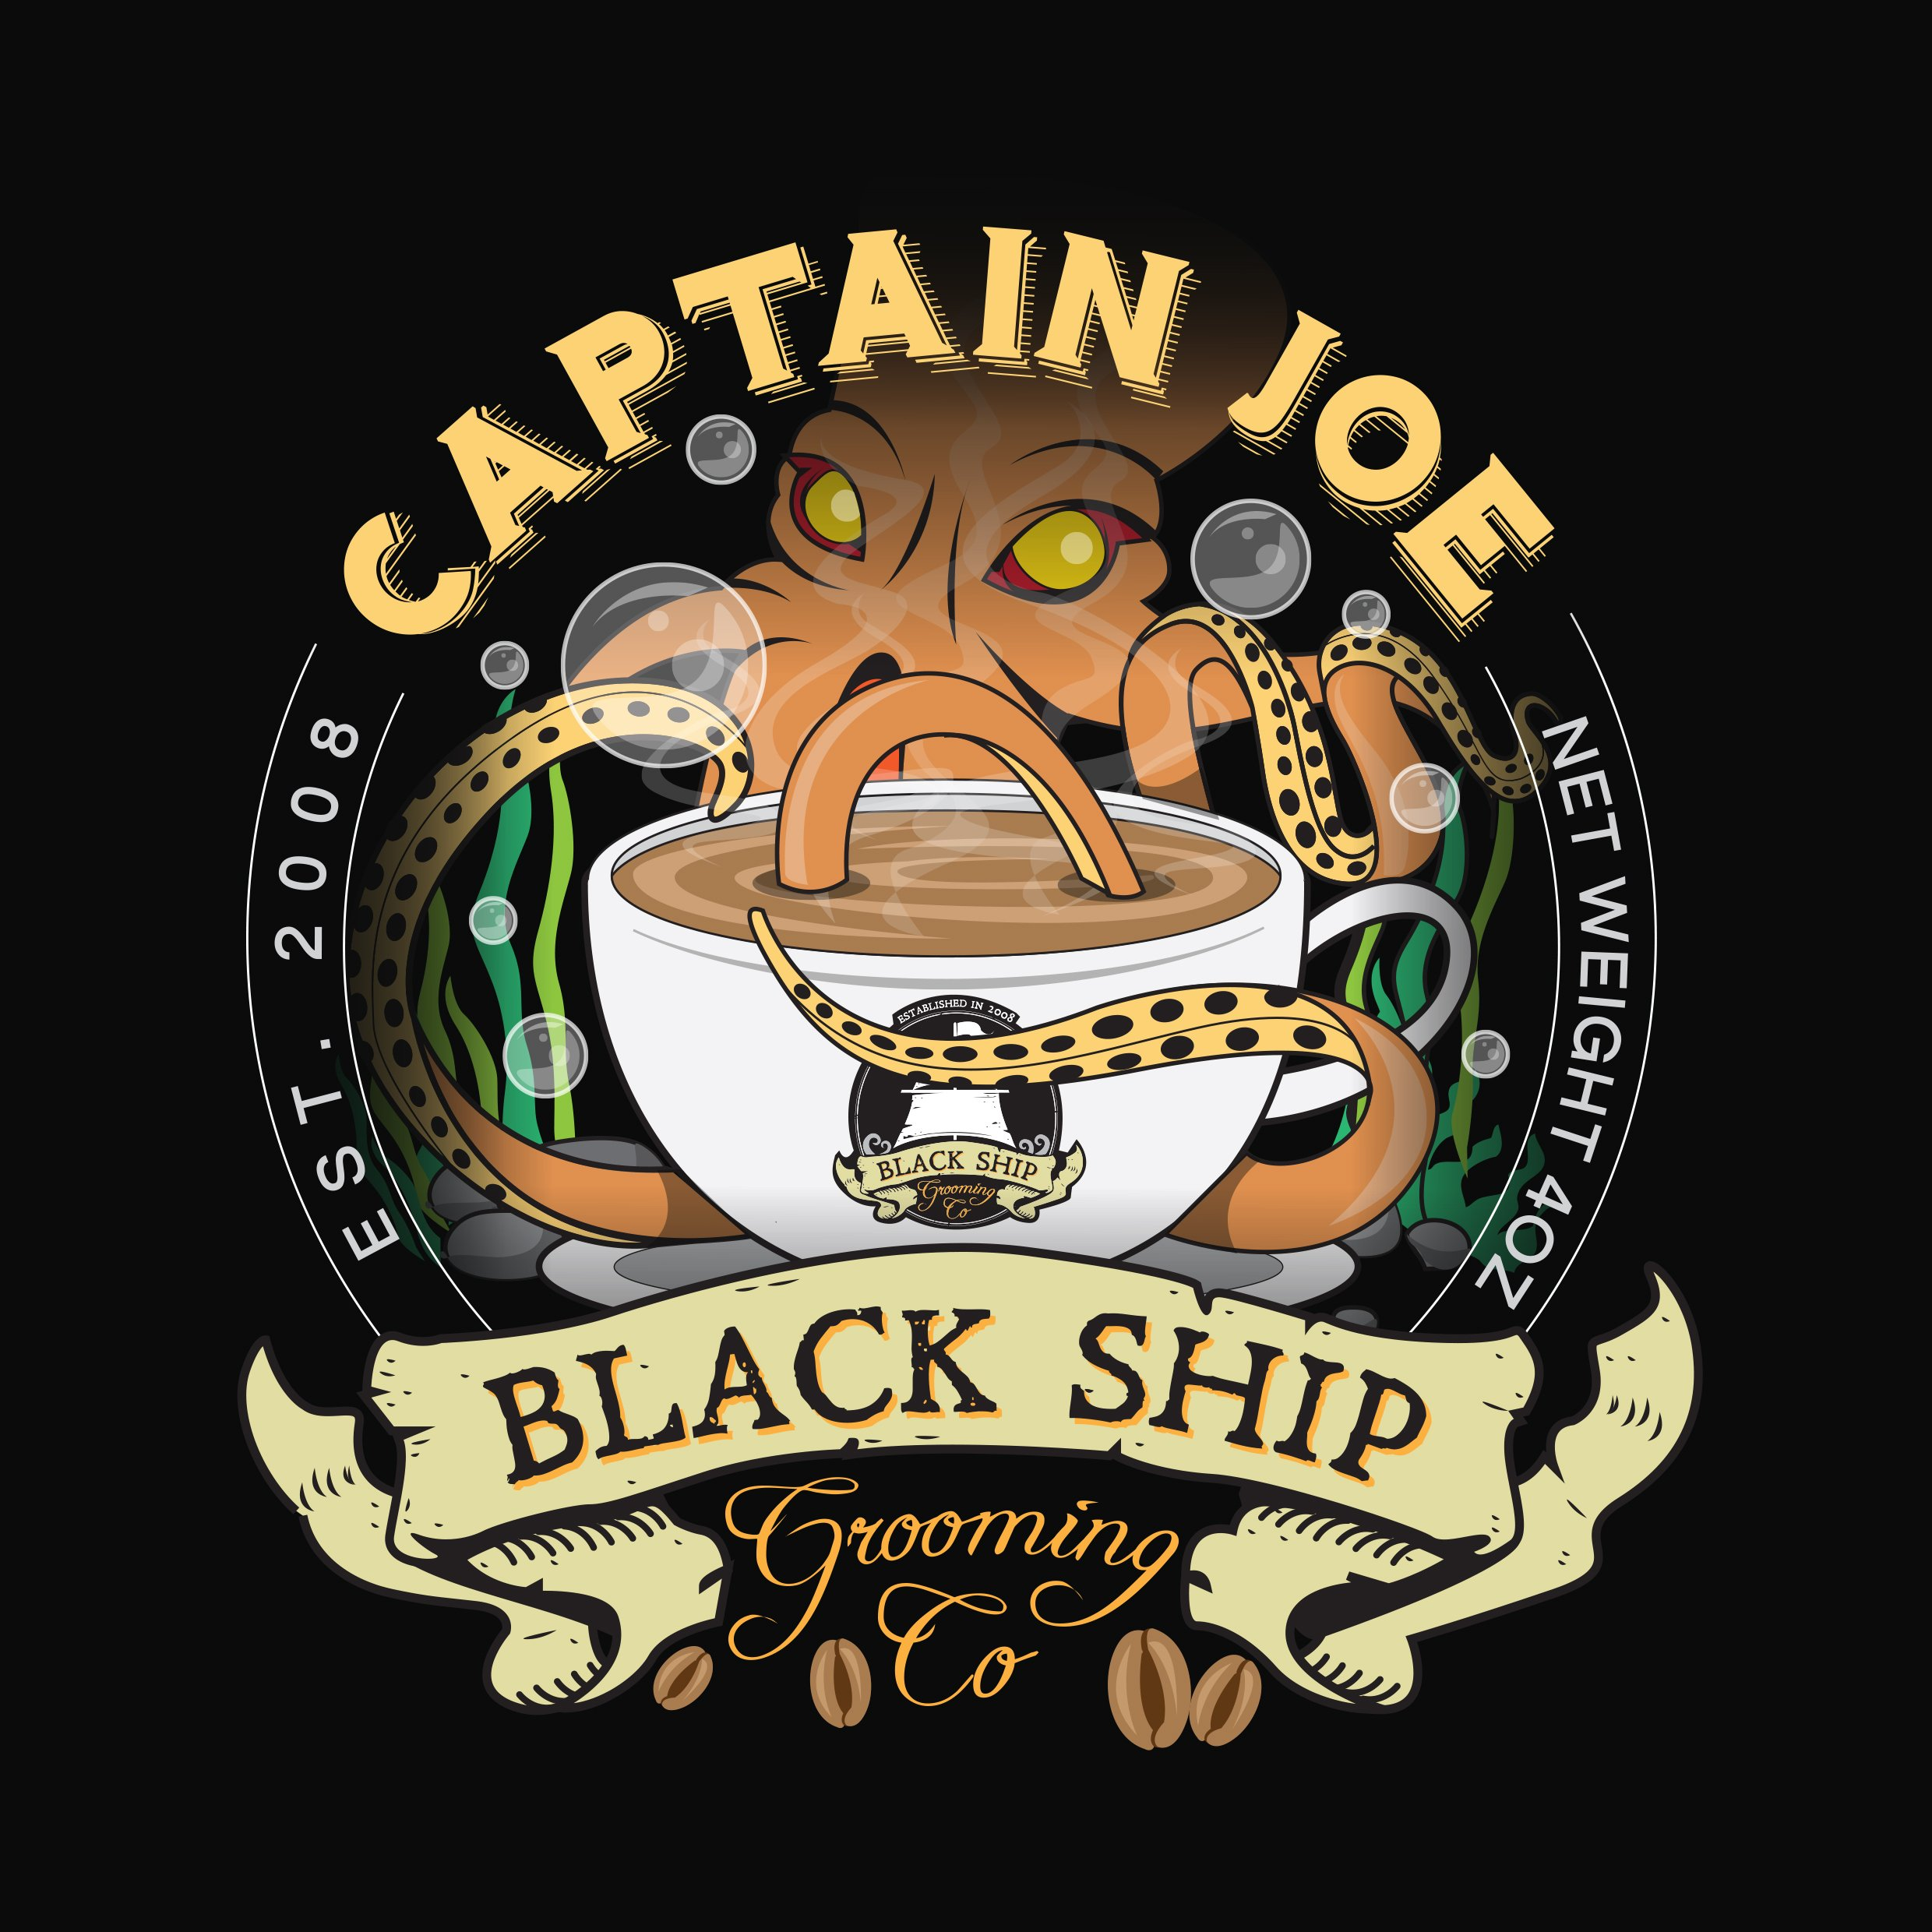 Black Ship Grooming - Captain Joe - Soap (Vegan) image